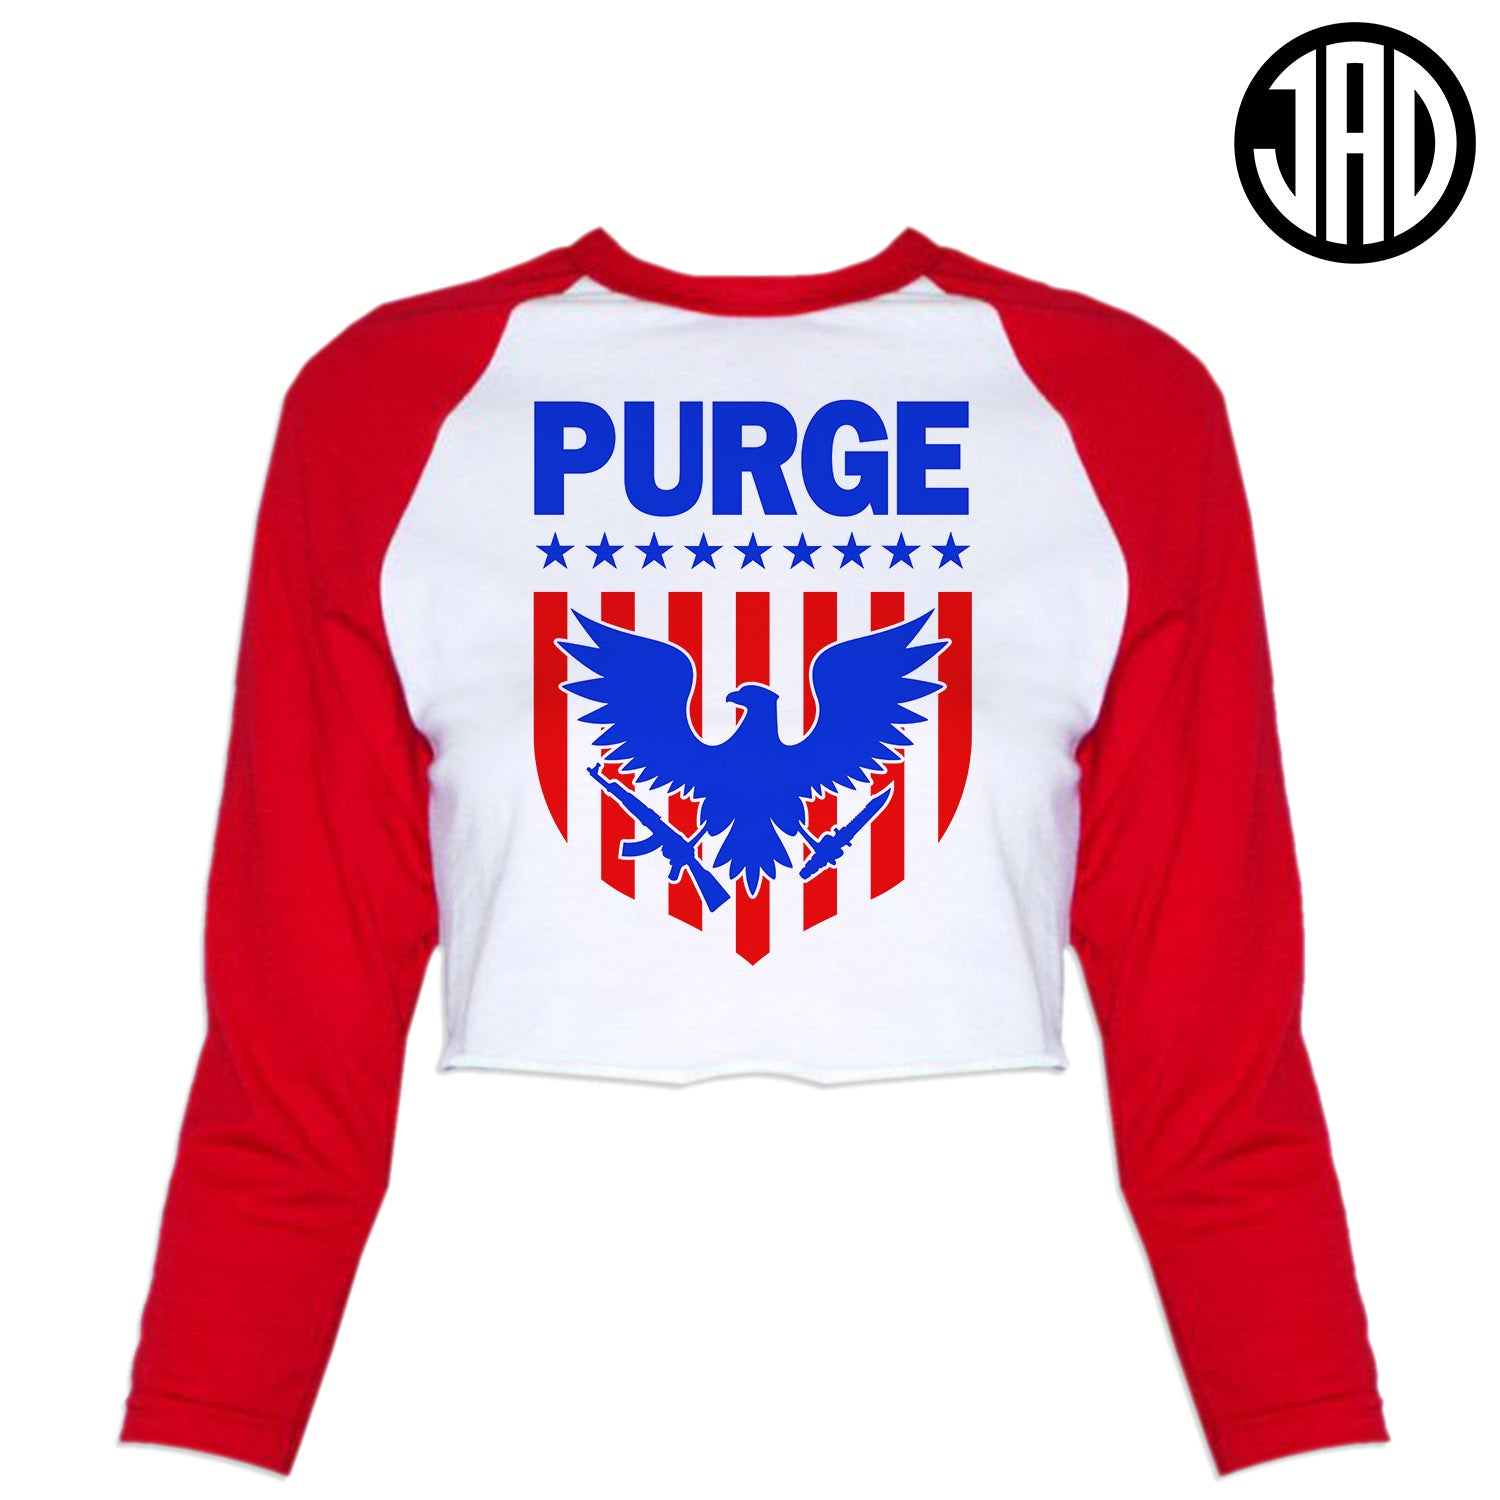 Purge Shield - Women's Cropped Baseball Tee